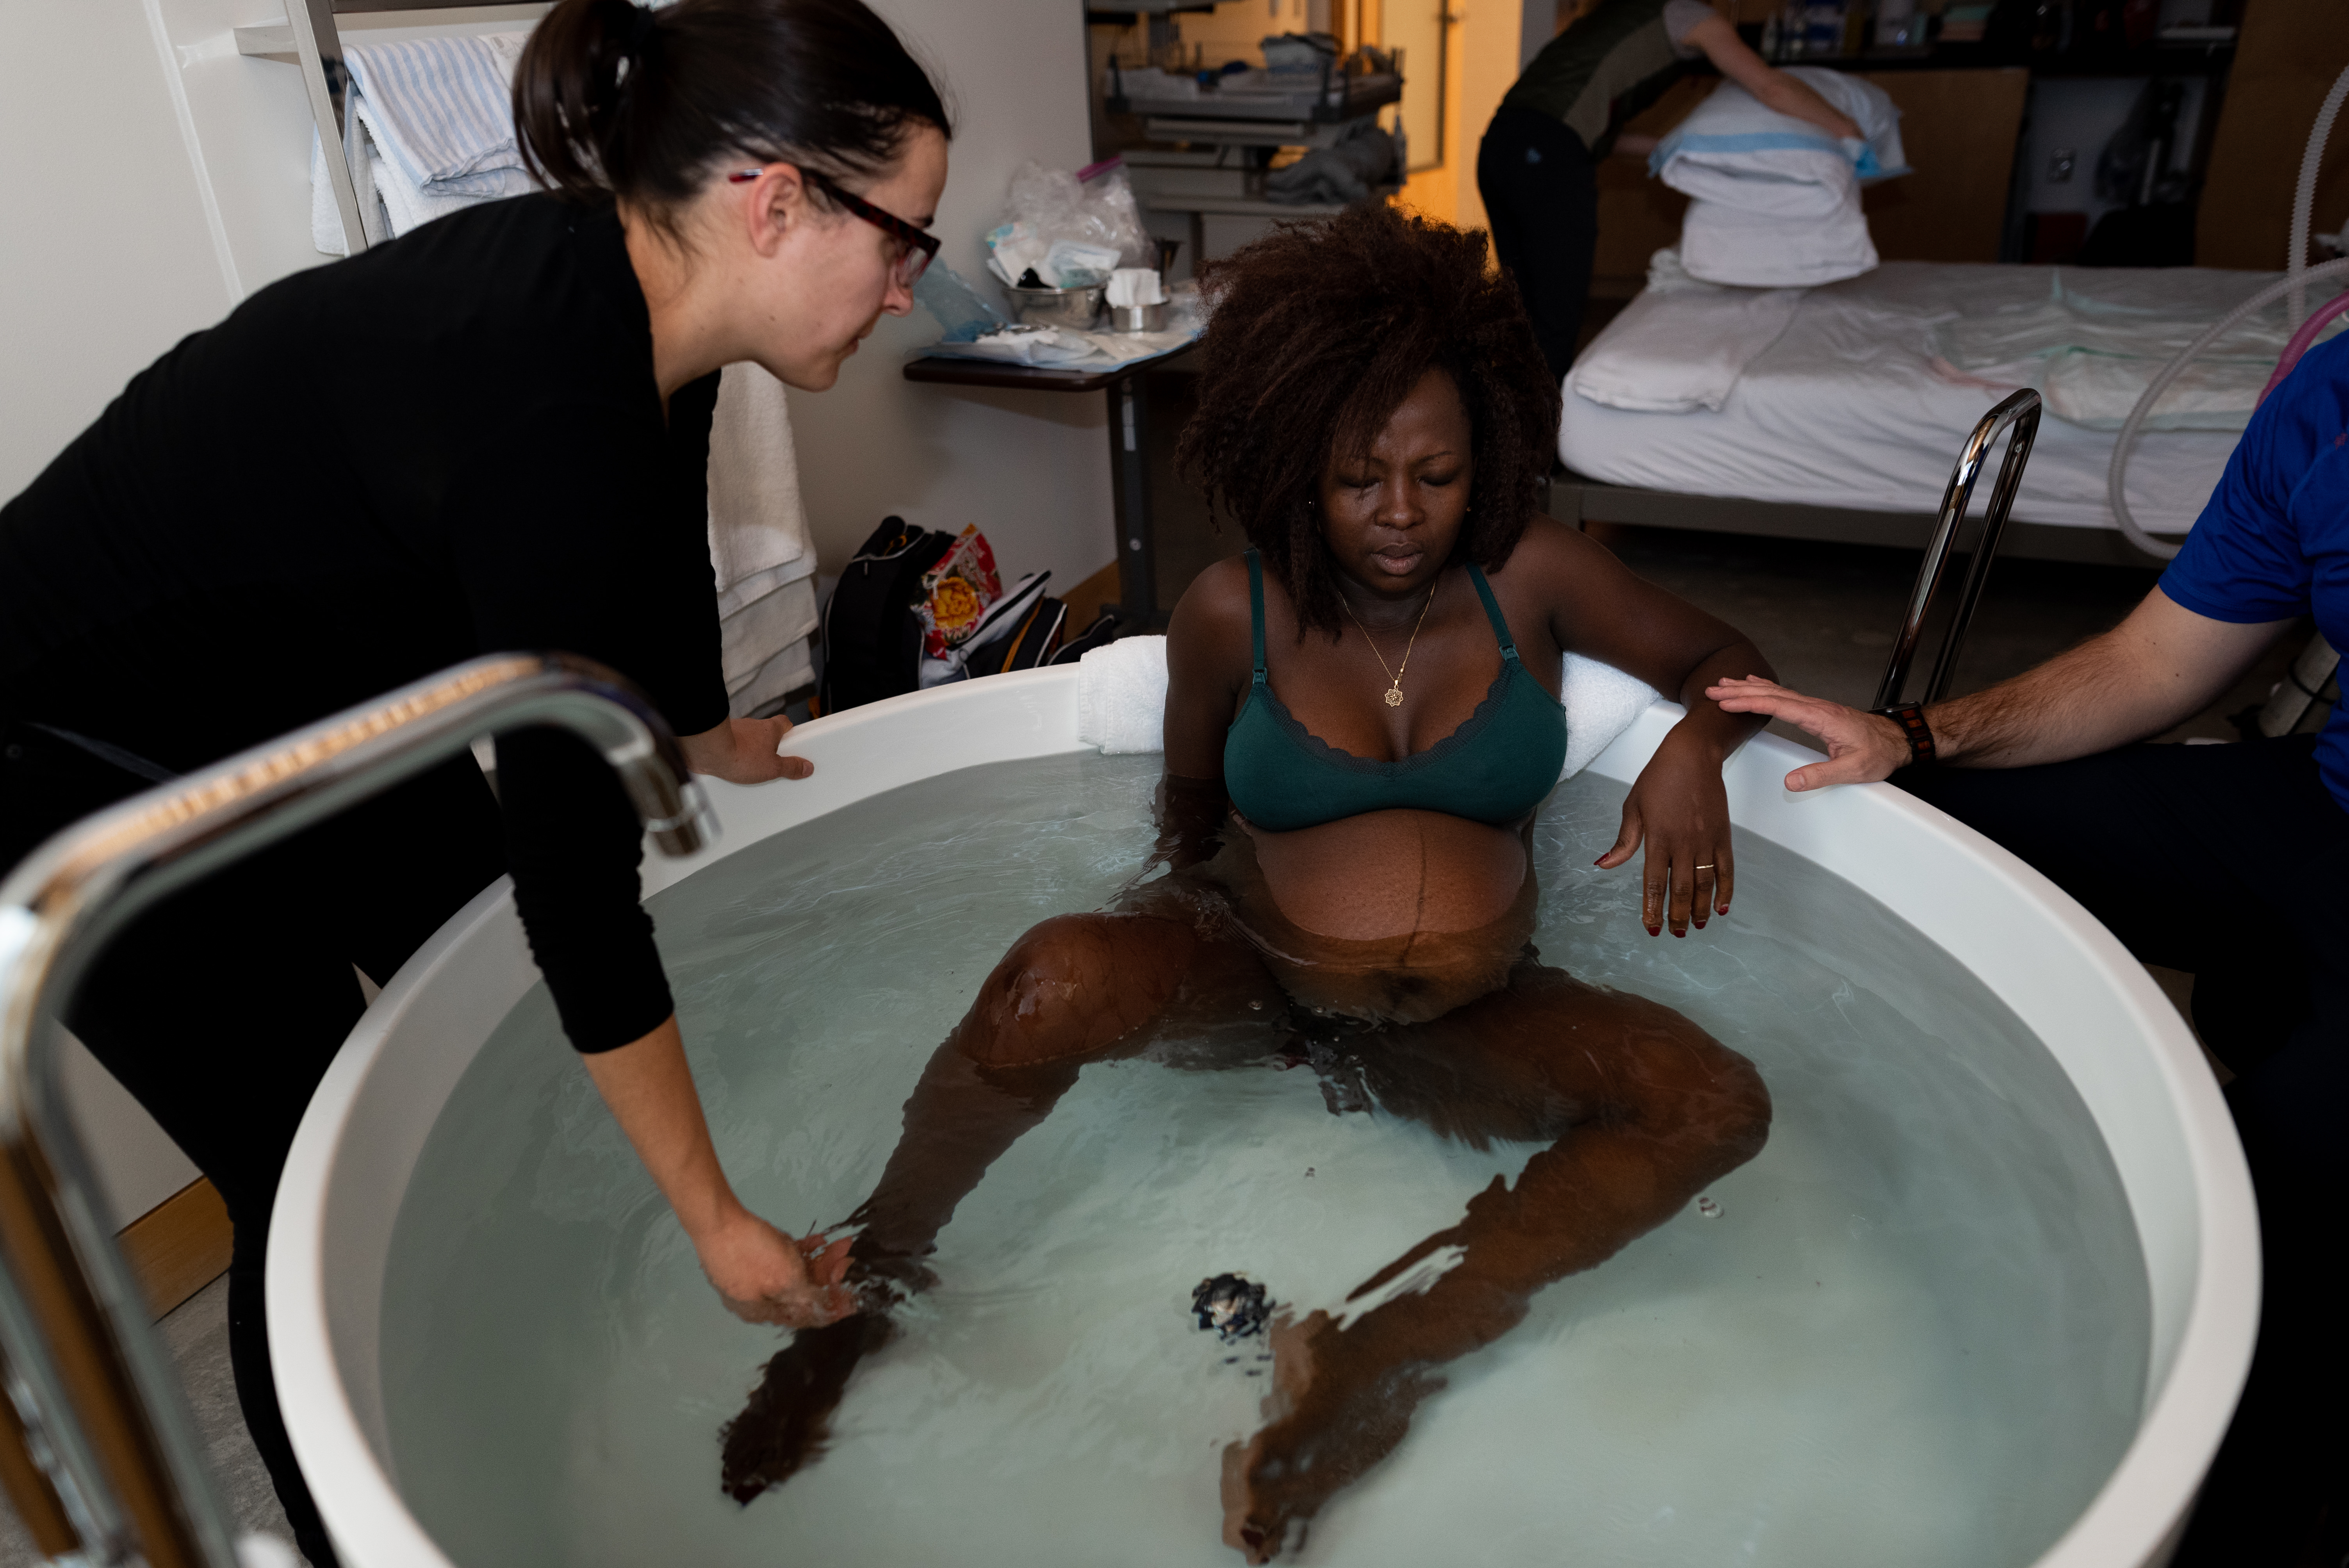 A doula supports a laboring mother during birth in a bathtub